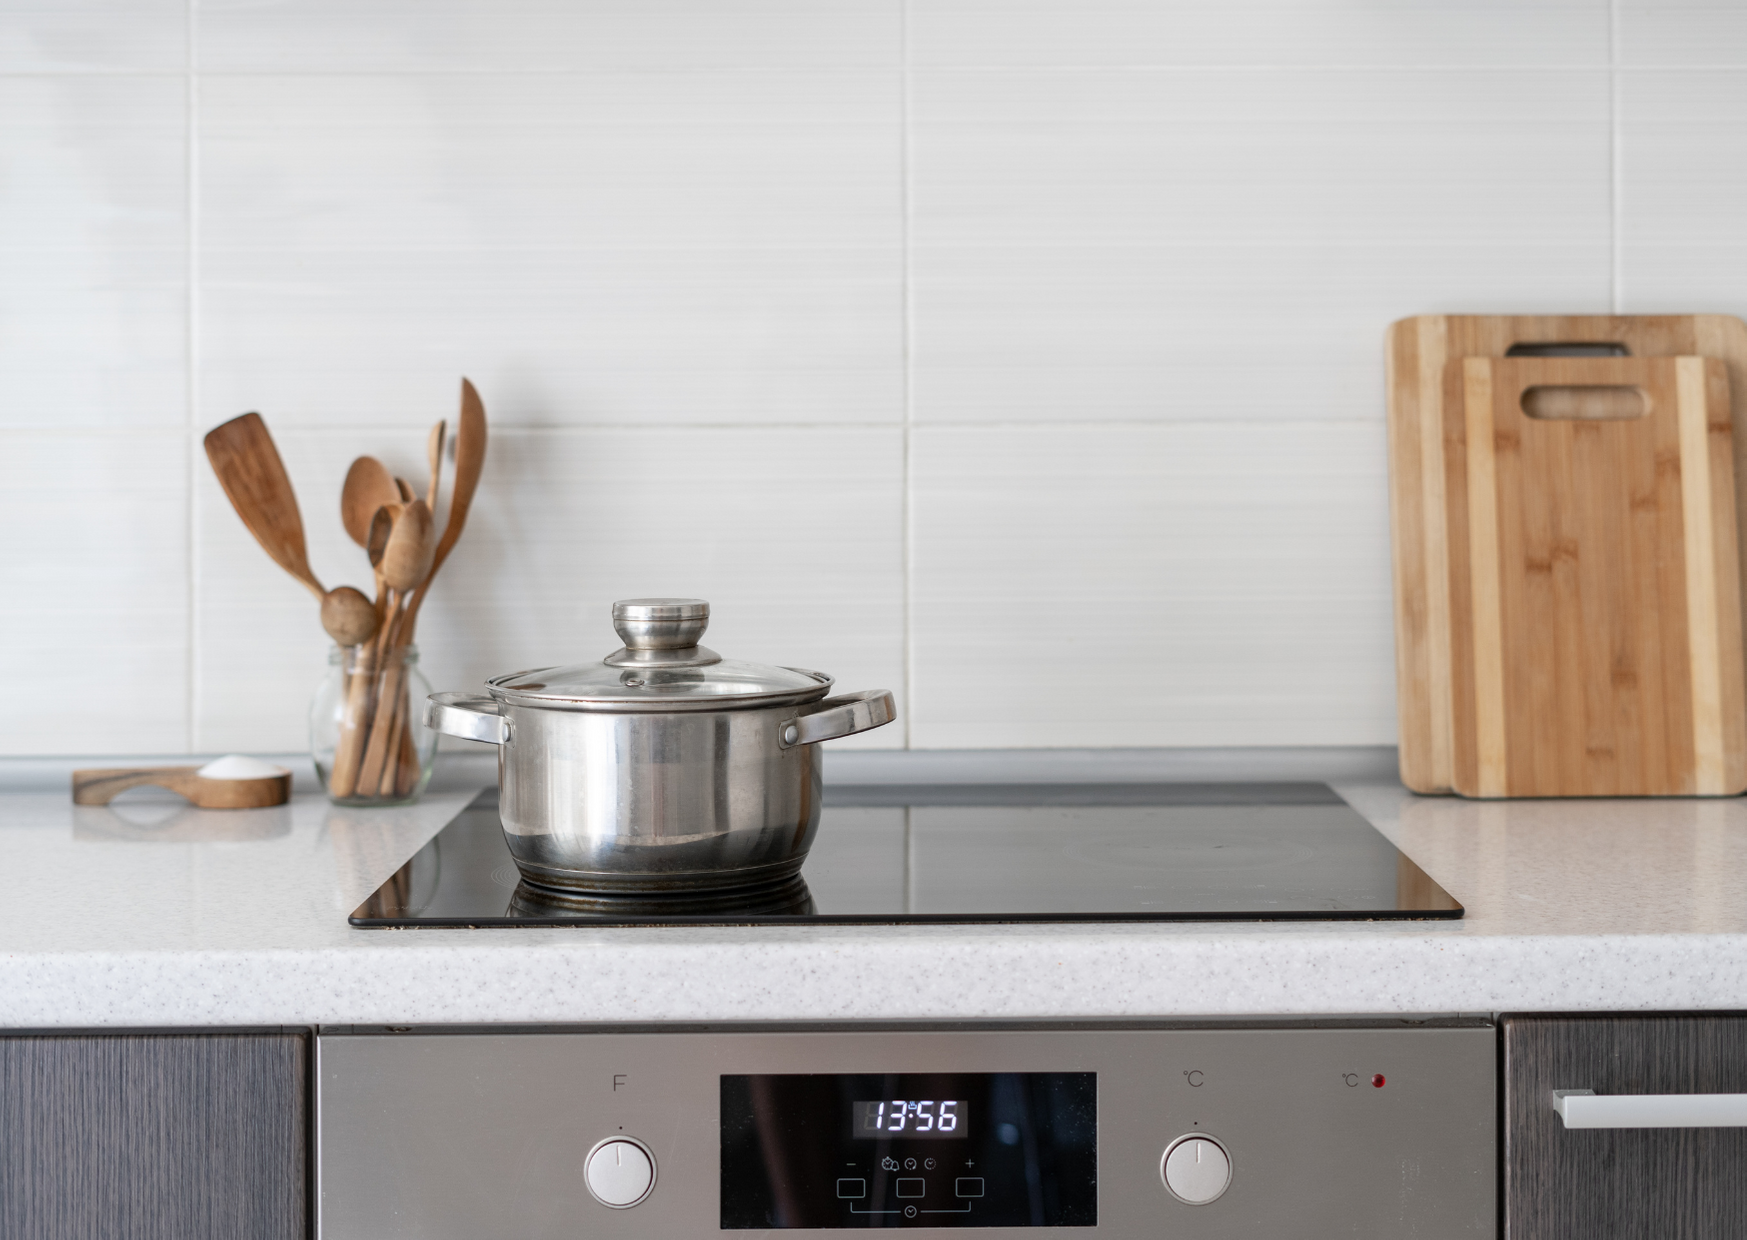 Photo of induction stove in kitchen